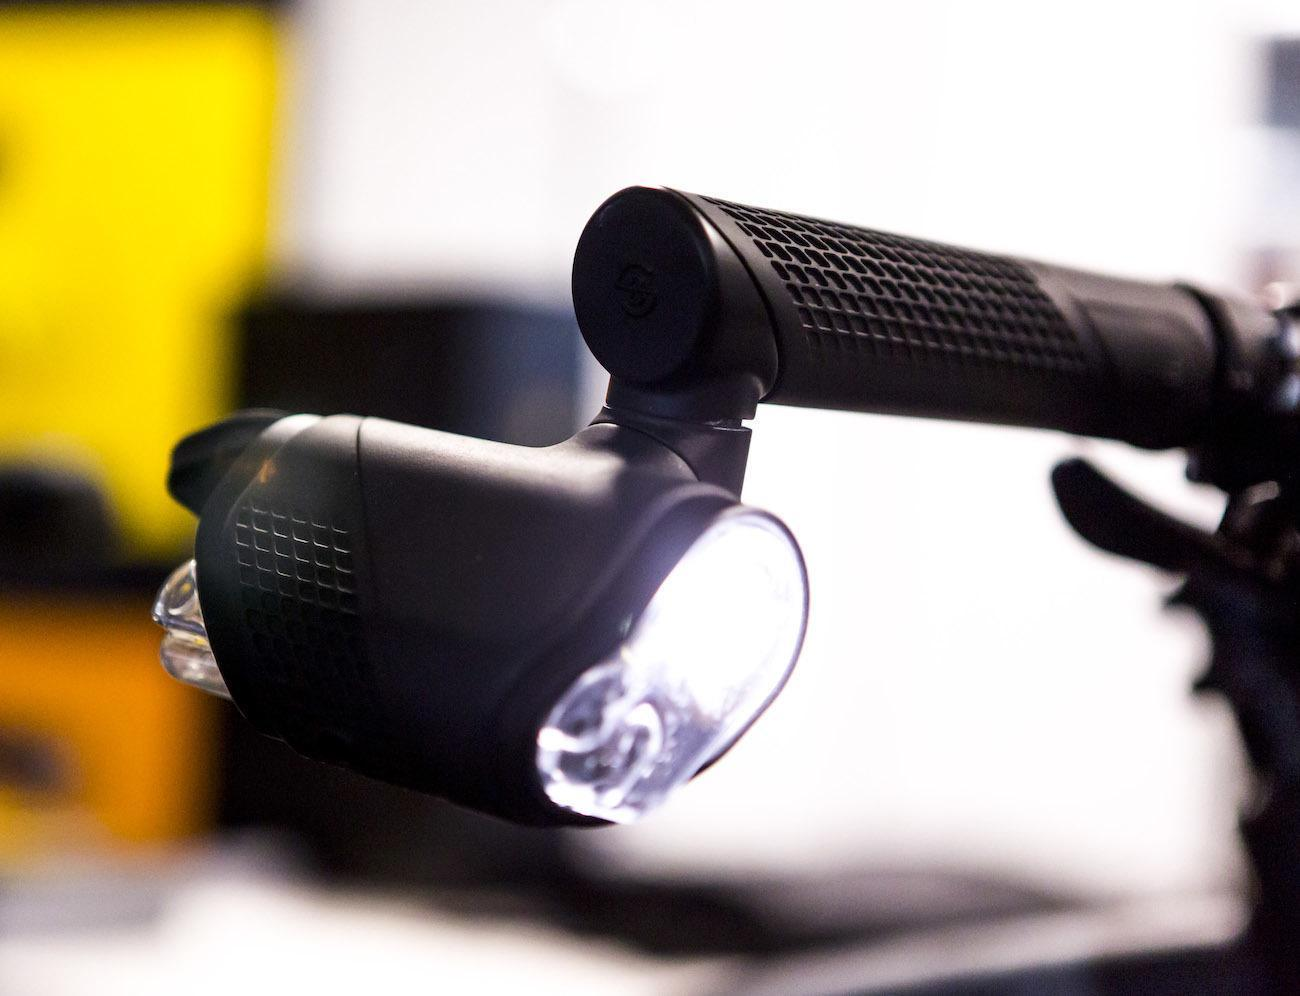 Brightspark Cyclist Safety Lighting Keeps You Safe on the Road